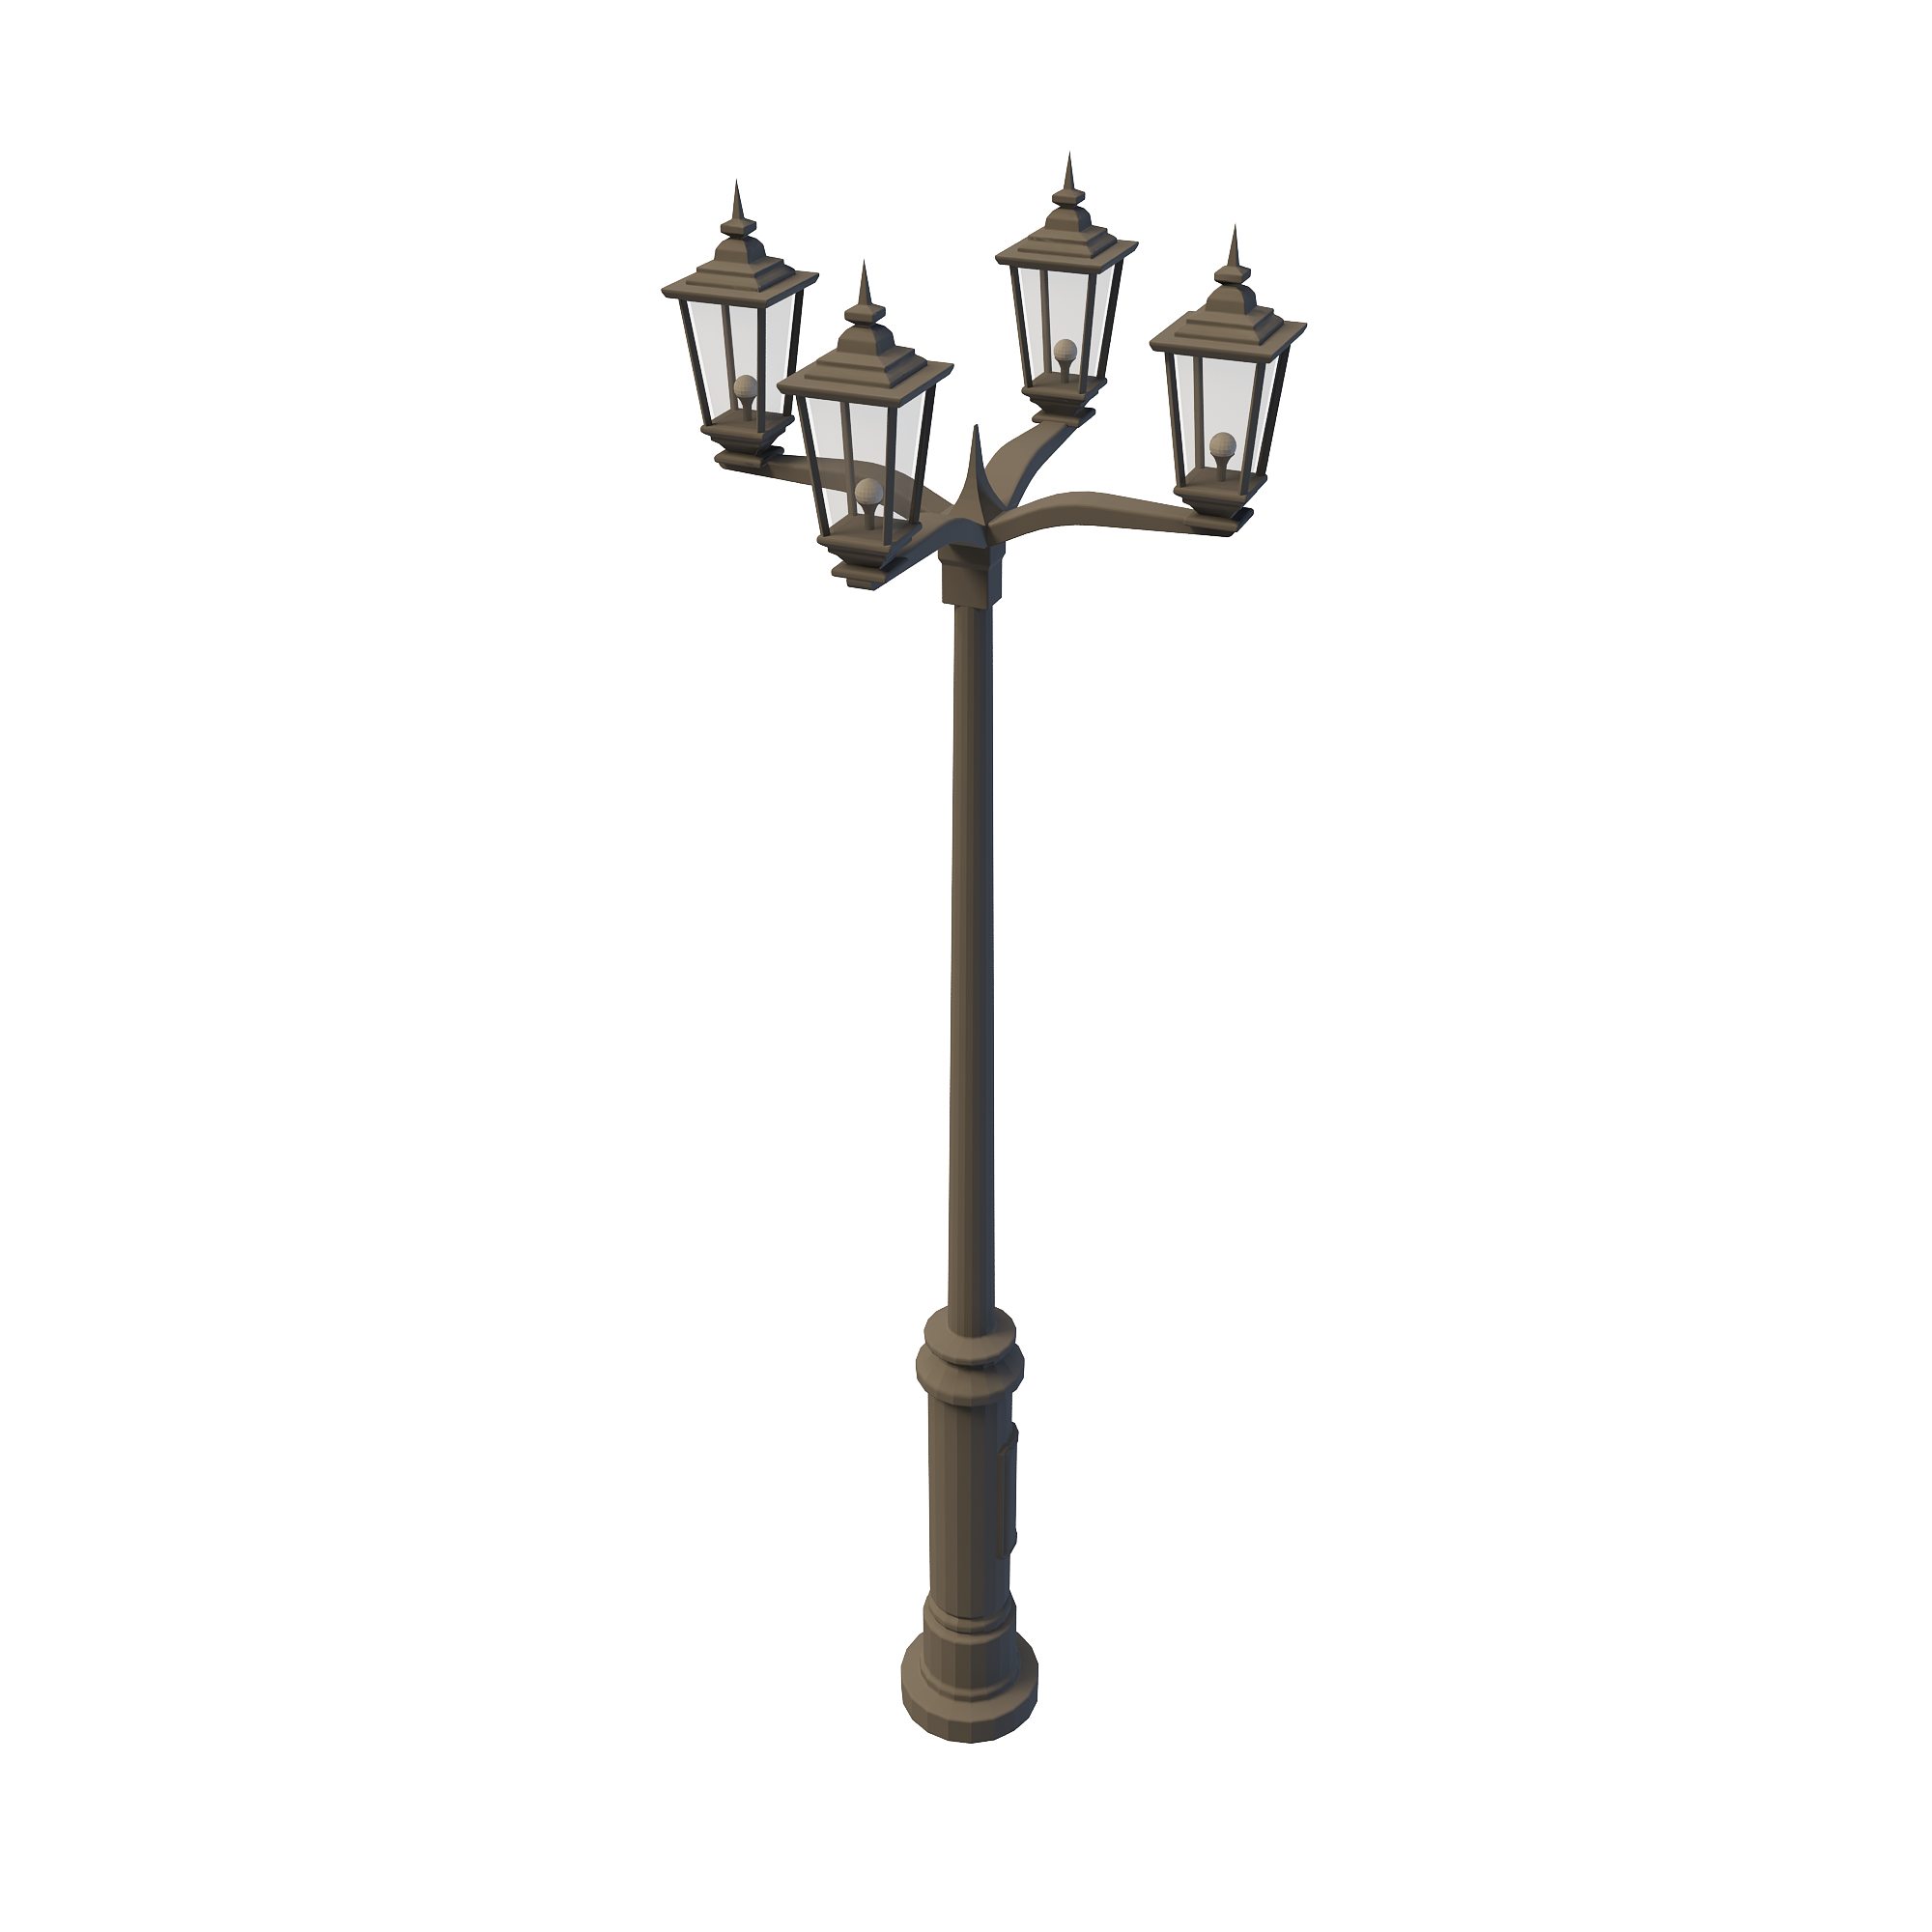 High Resolution Lamp Png Clipart image #34937